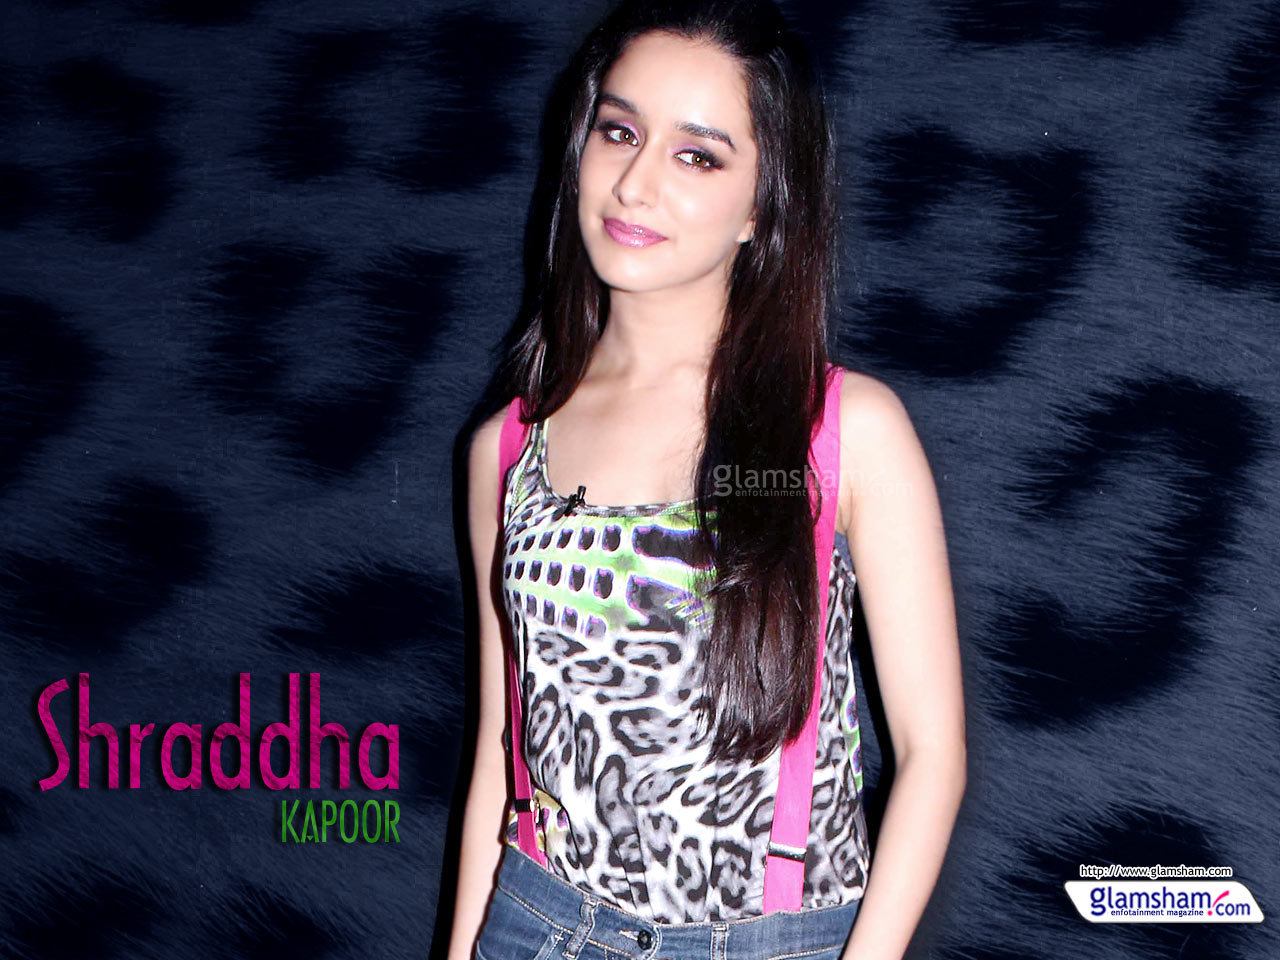 Download Shraddha Kapoor In Aashiqui 2 Movie Hd Wallpaper: AASHIQUI 2 - Without Pics